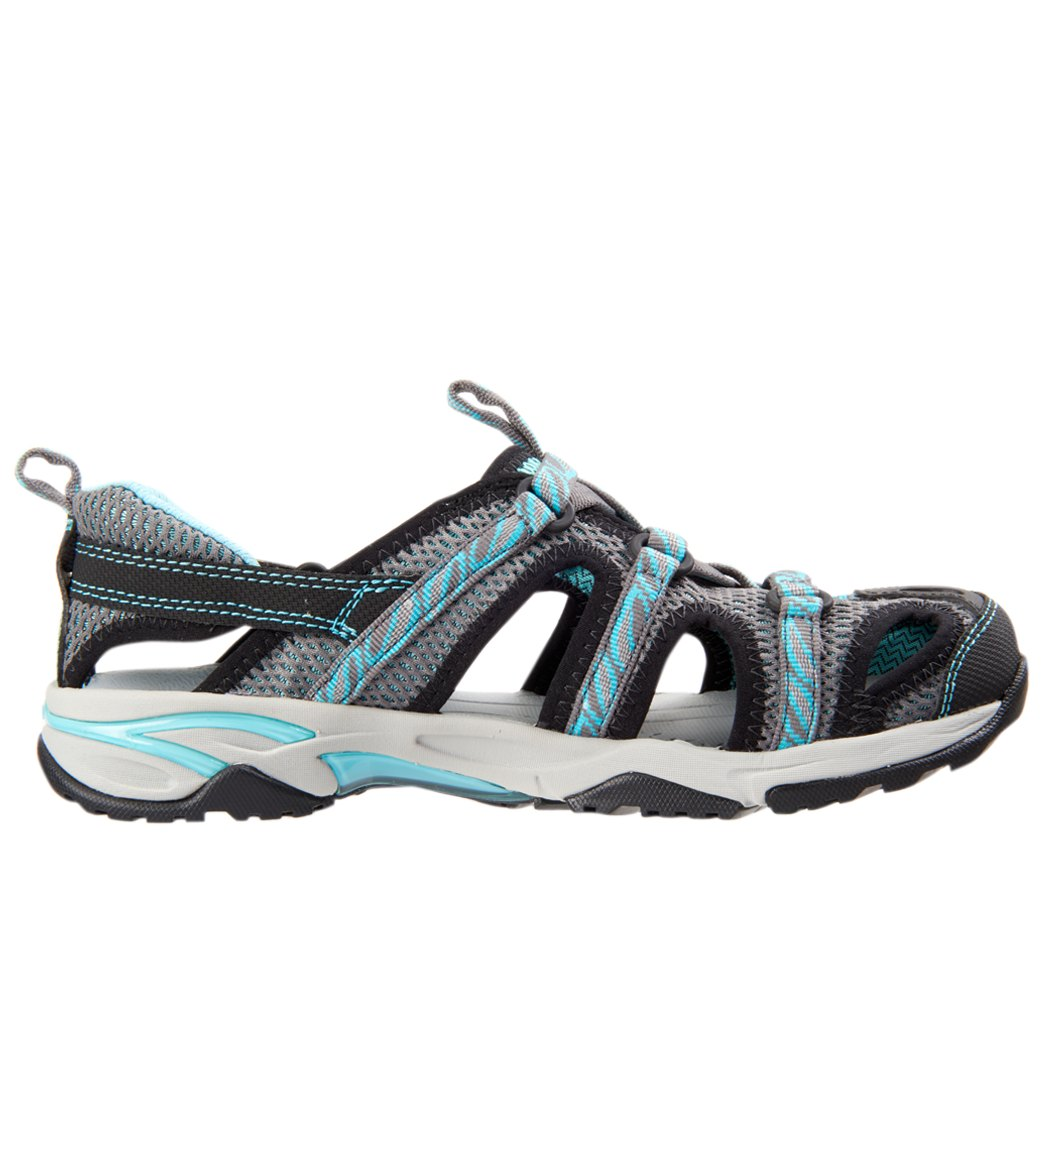 Ahnu Women's Tilden V Water Shoes at SwimOutlet.com - Free Shipping